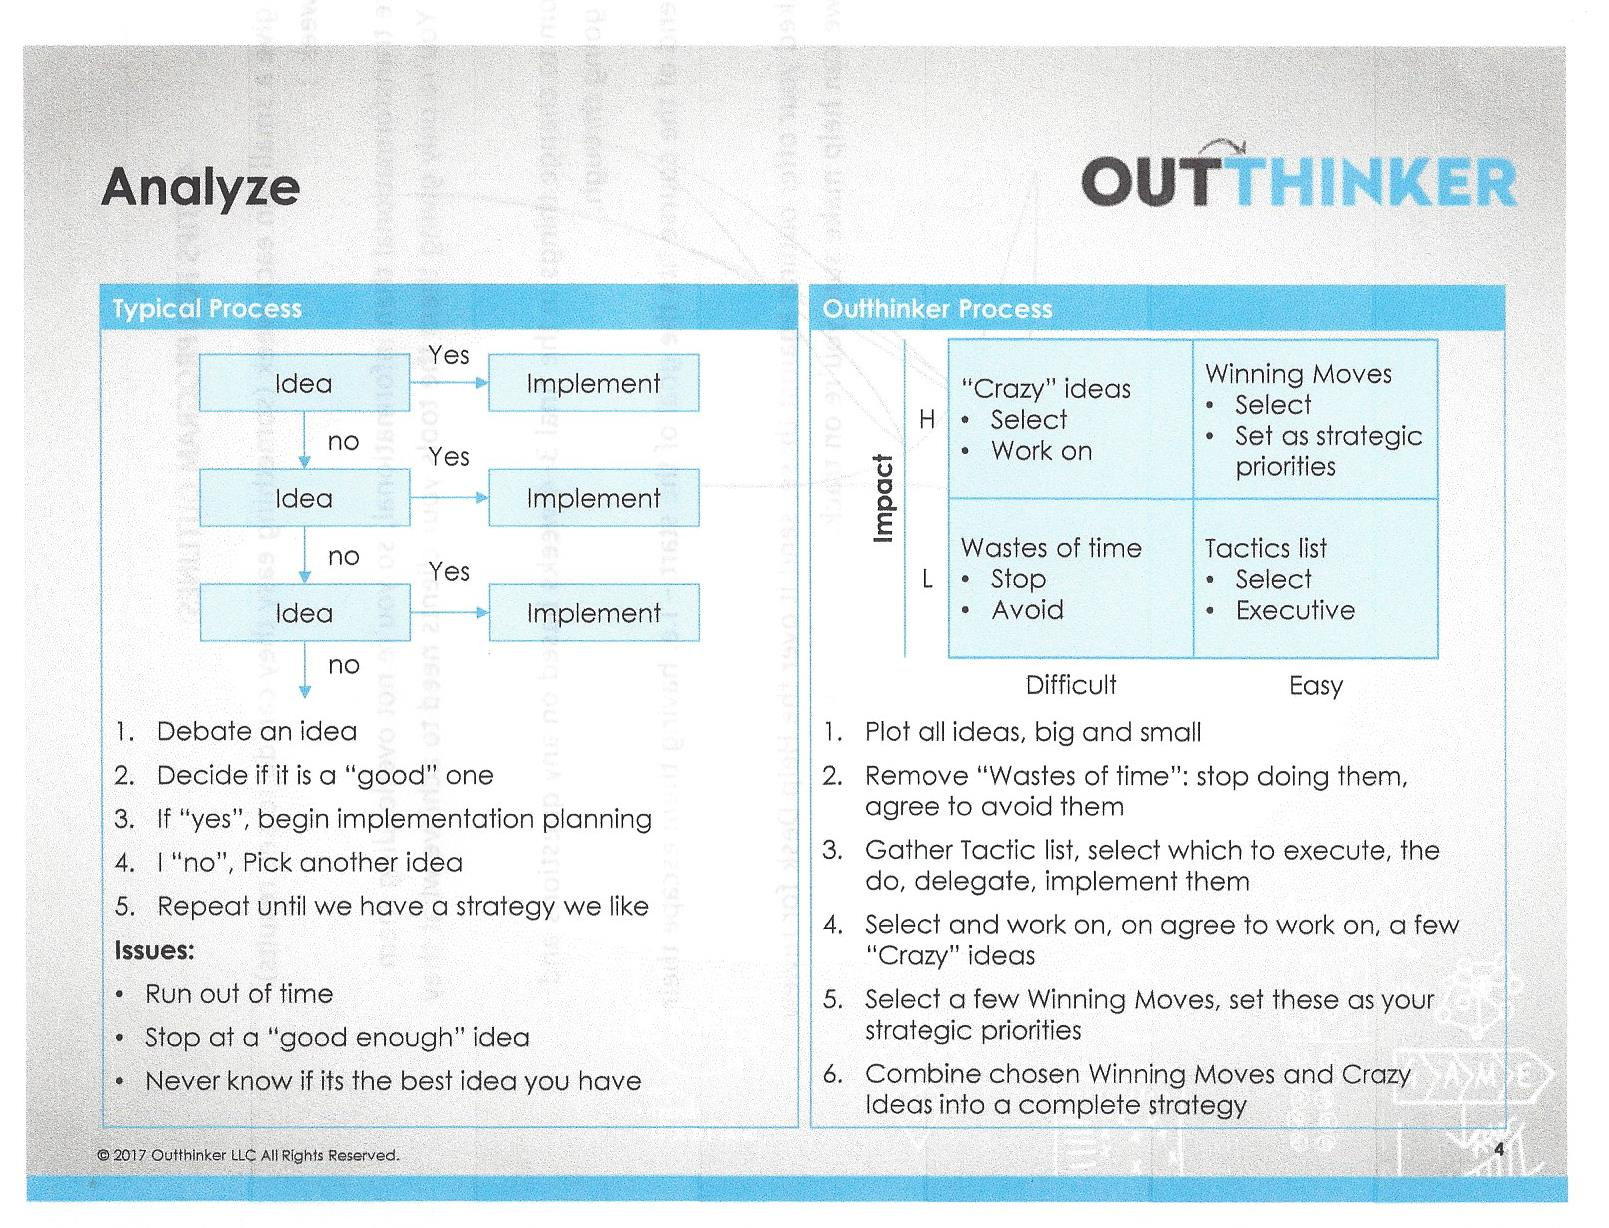 OUTTHNKER PROCESS - ANALYSE